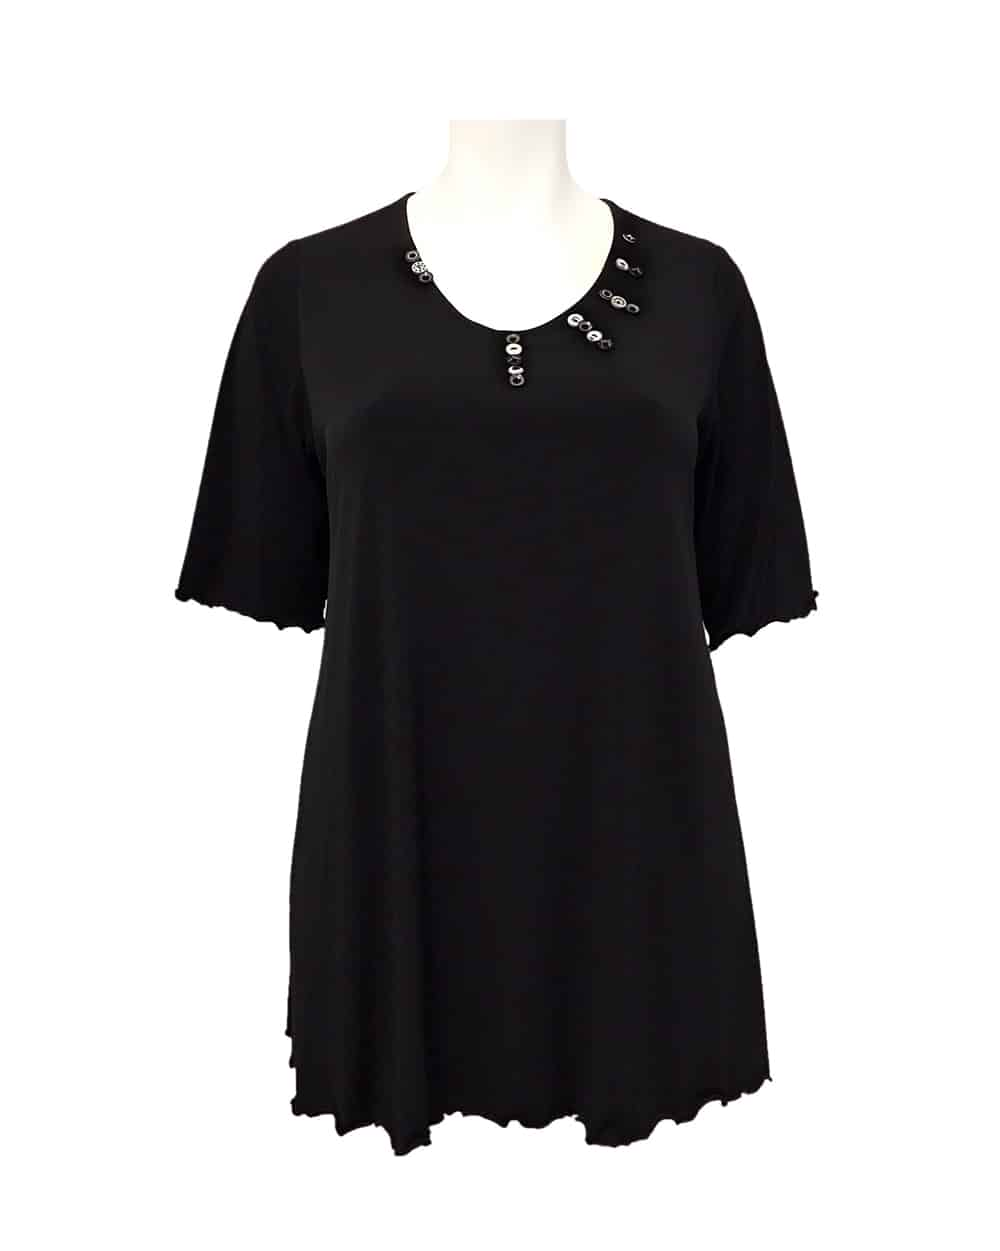 Hayley-Joy-Miracle-Short-Sleeve-Shape-Top-Black-White-Button-Detail-1-1000